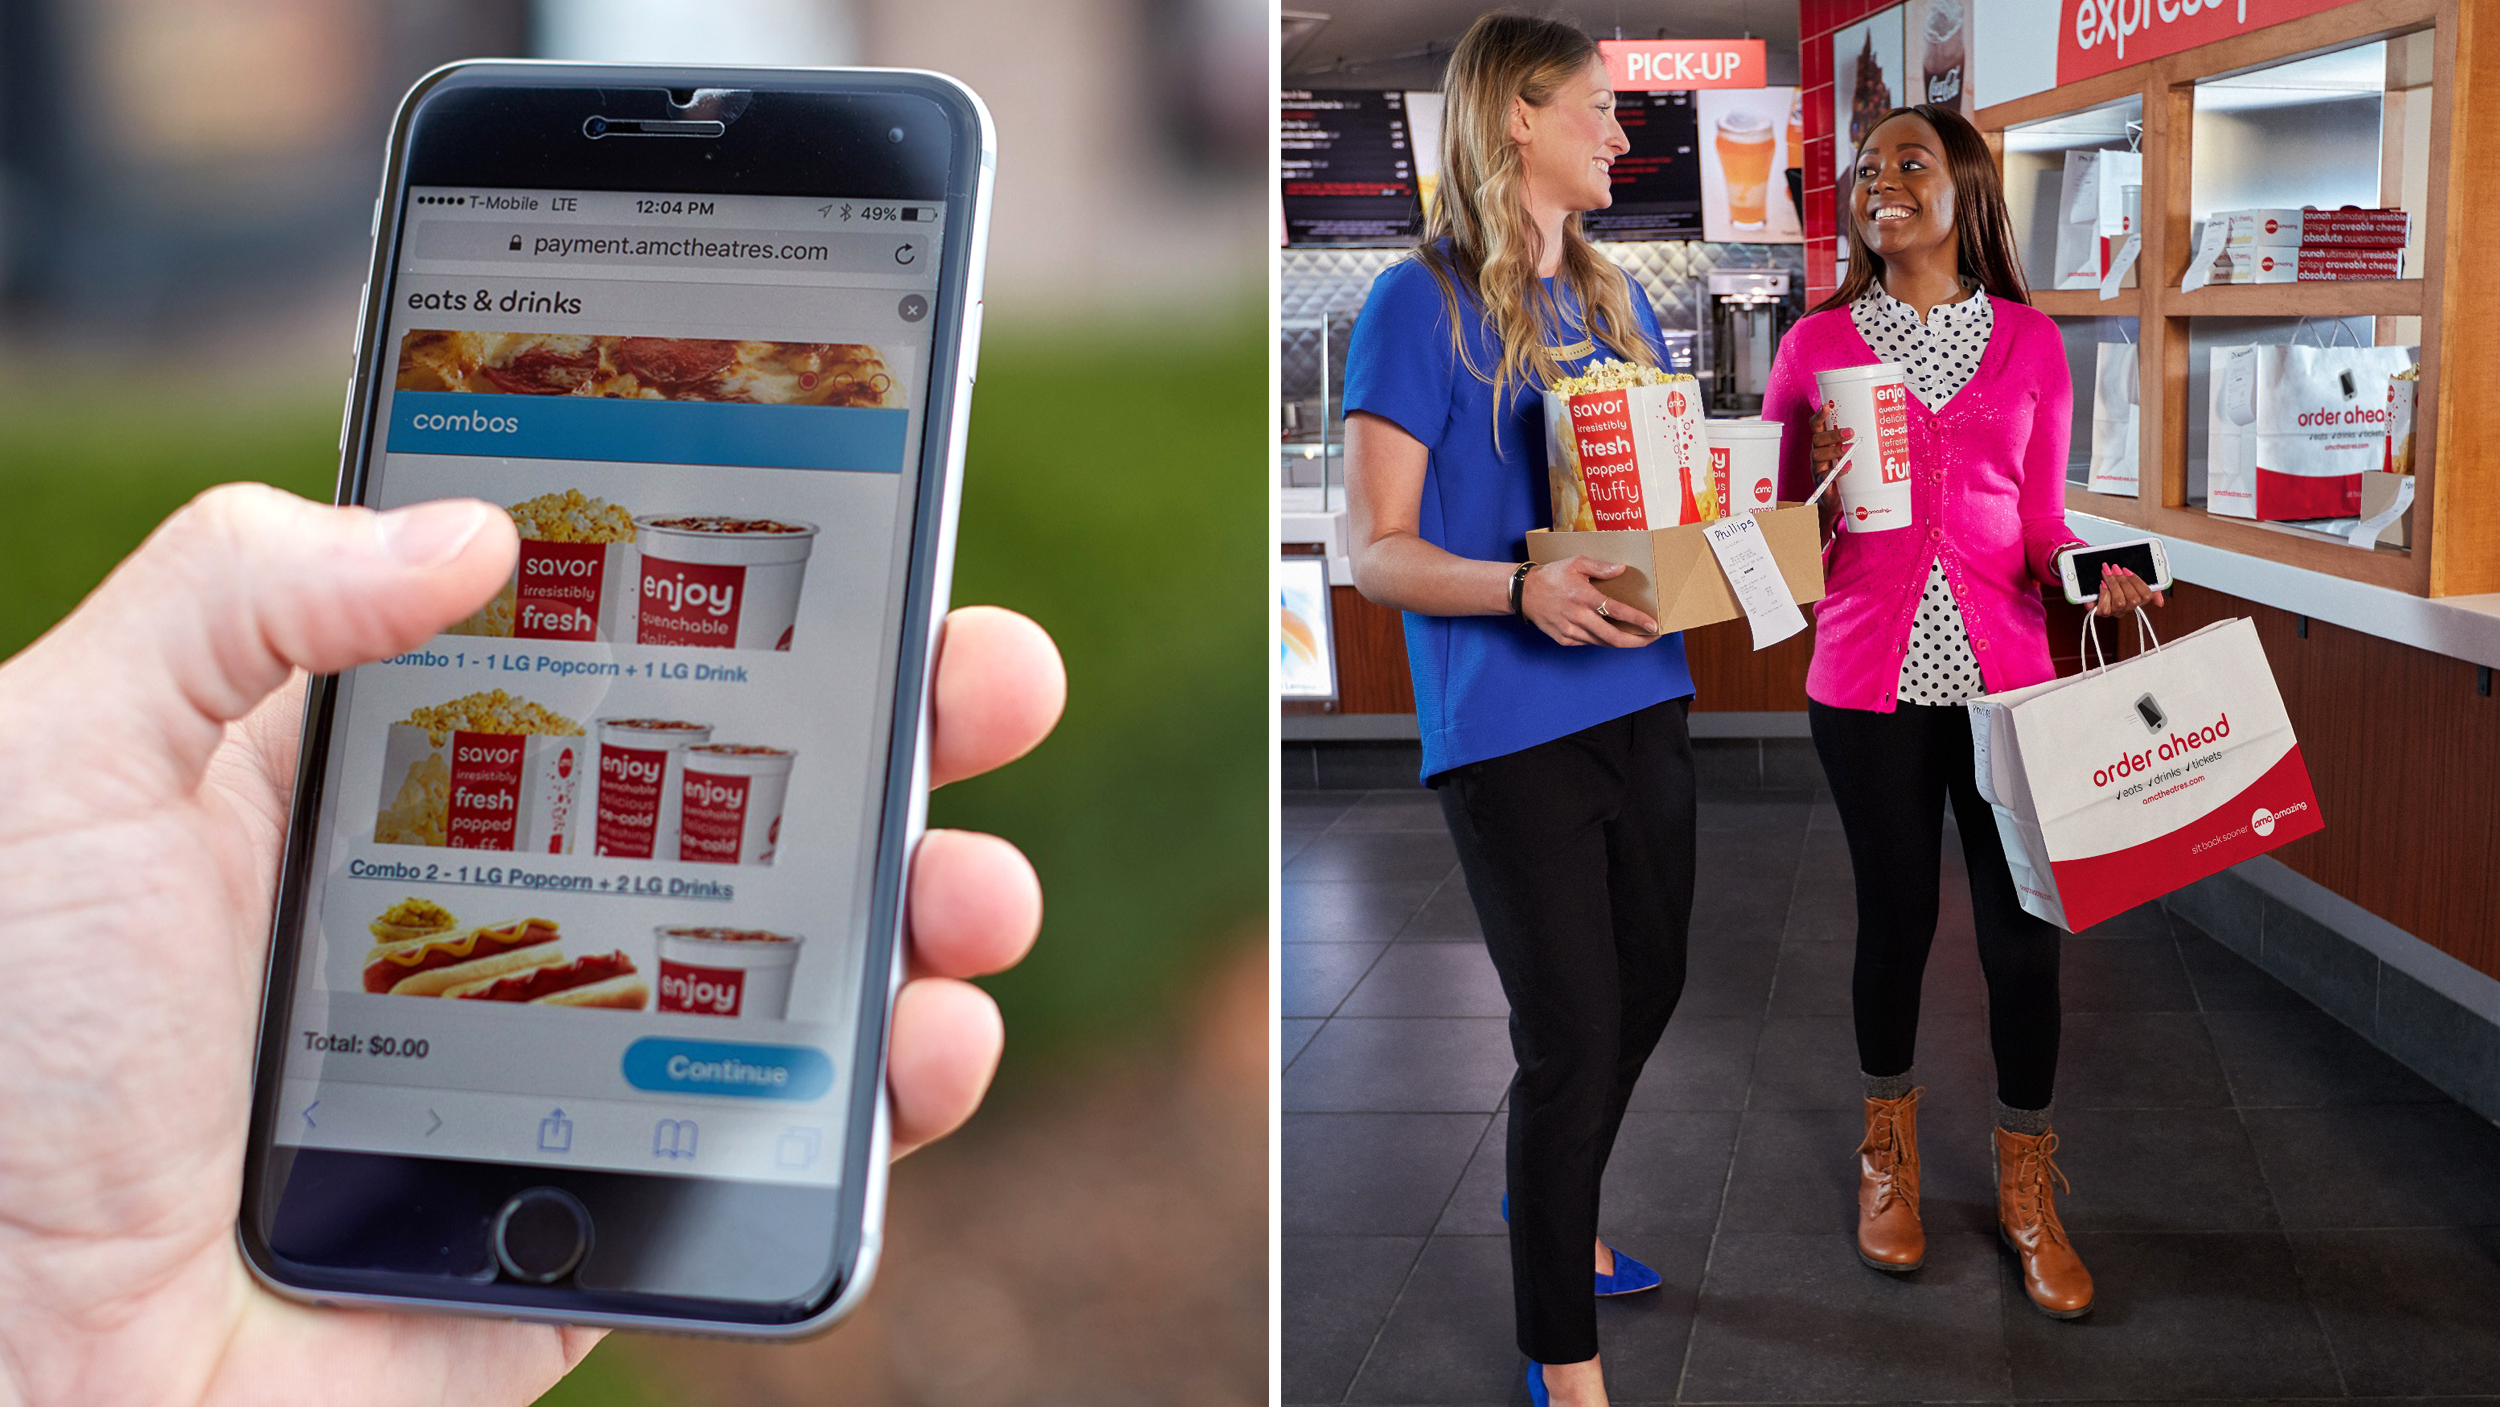 Pay Dc Tickets Online >> Want to order movie-theater snacks in advance? There's an app for that - TODAY.com